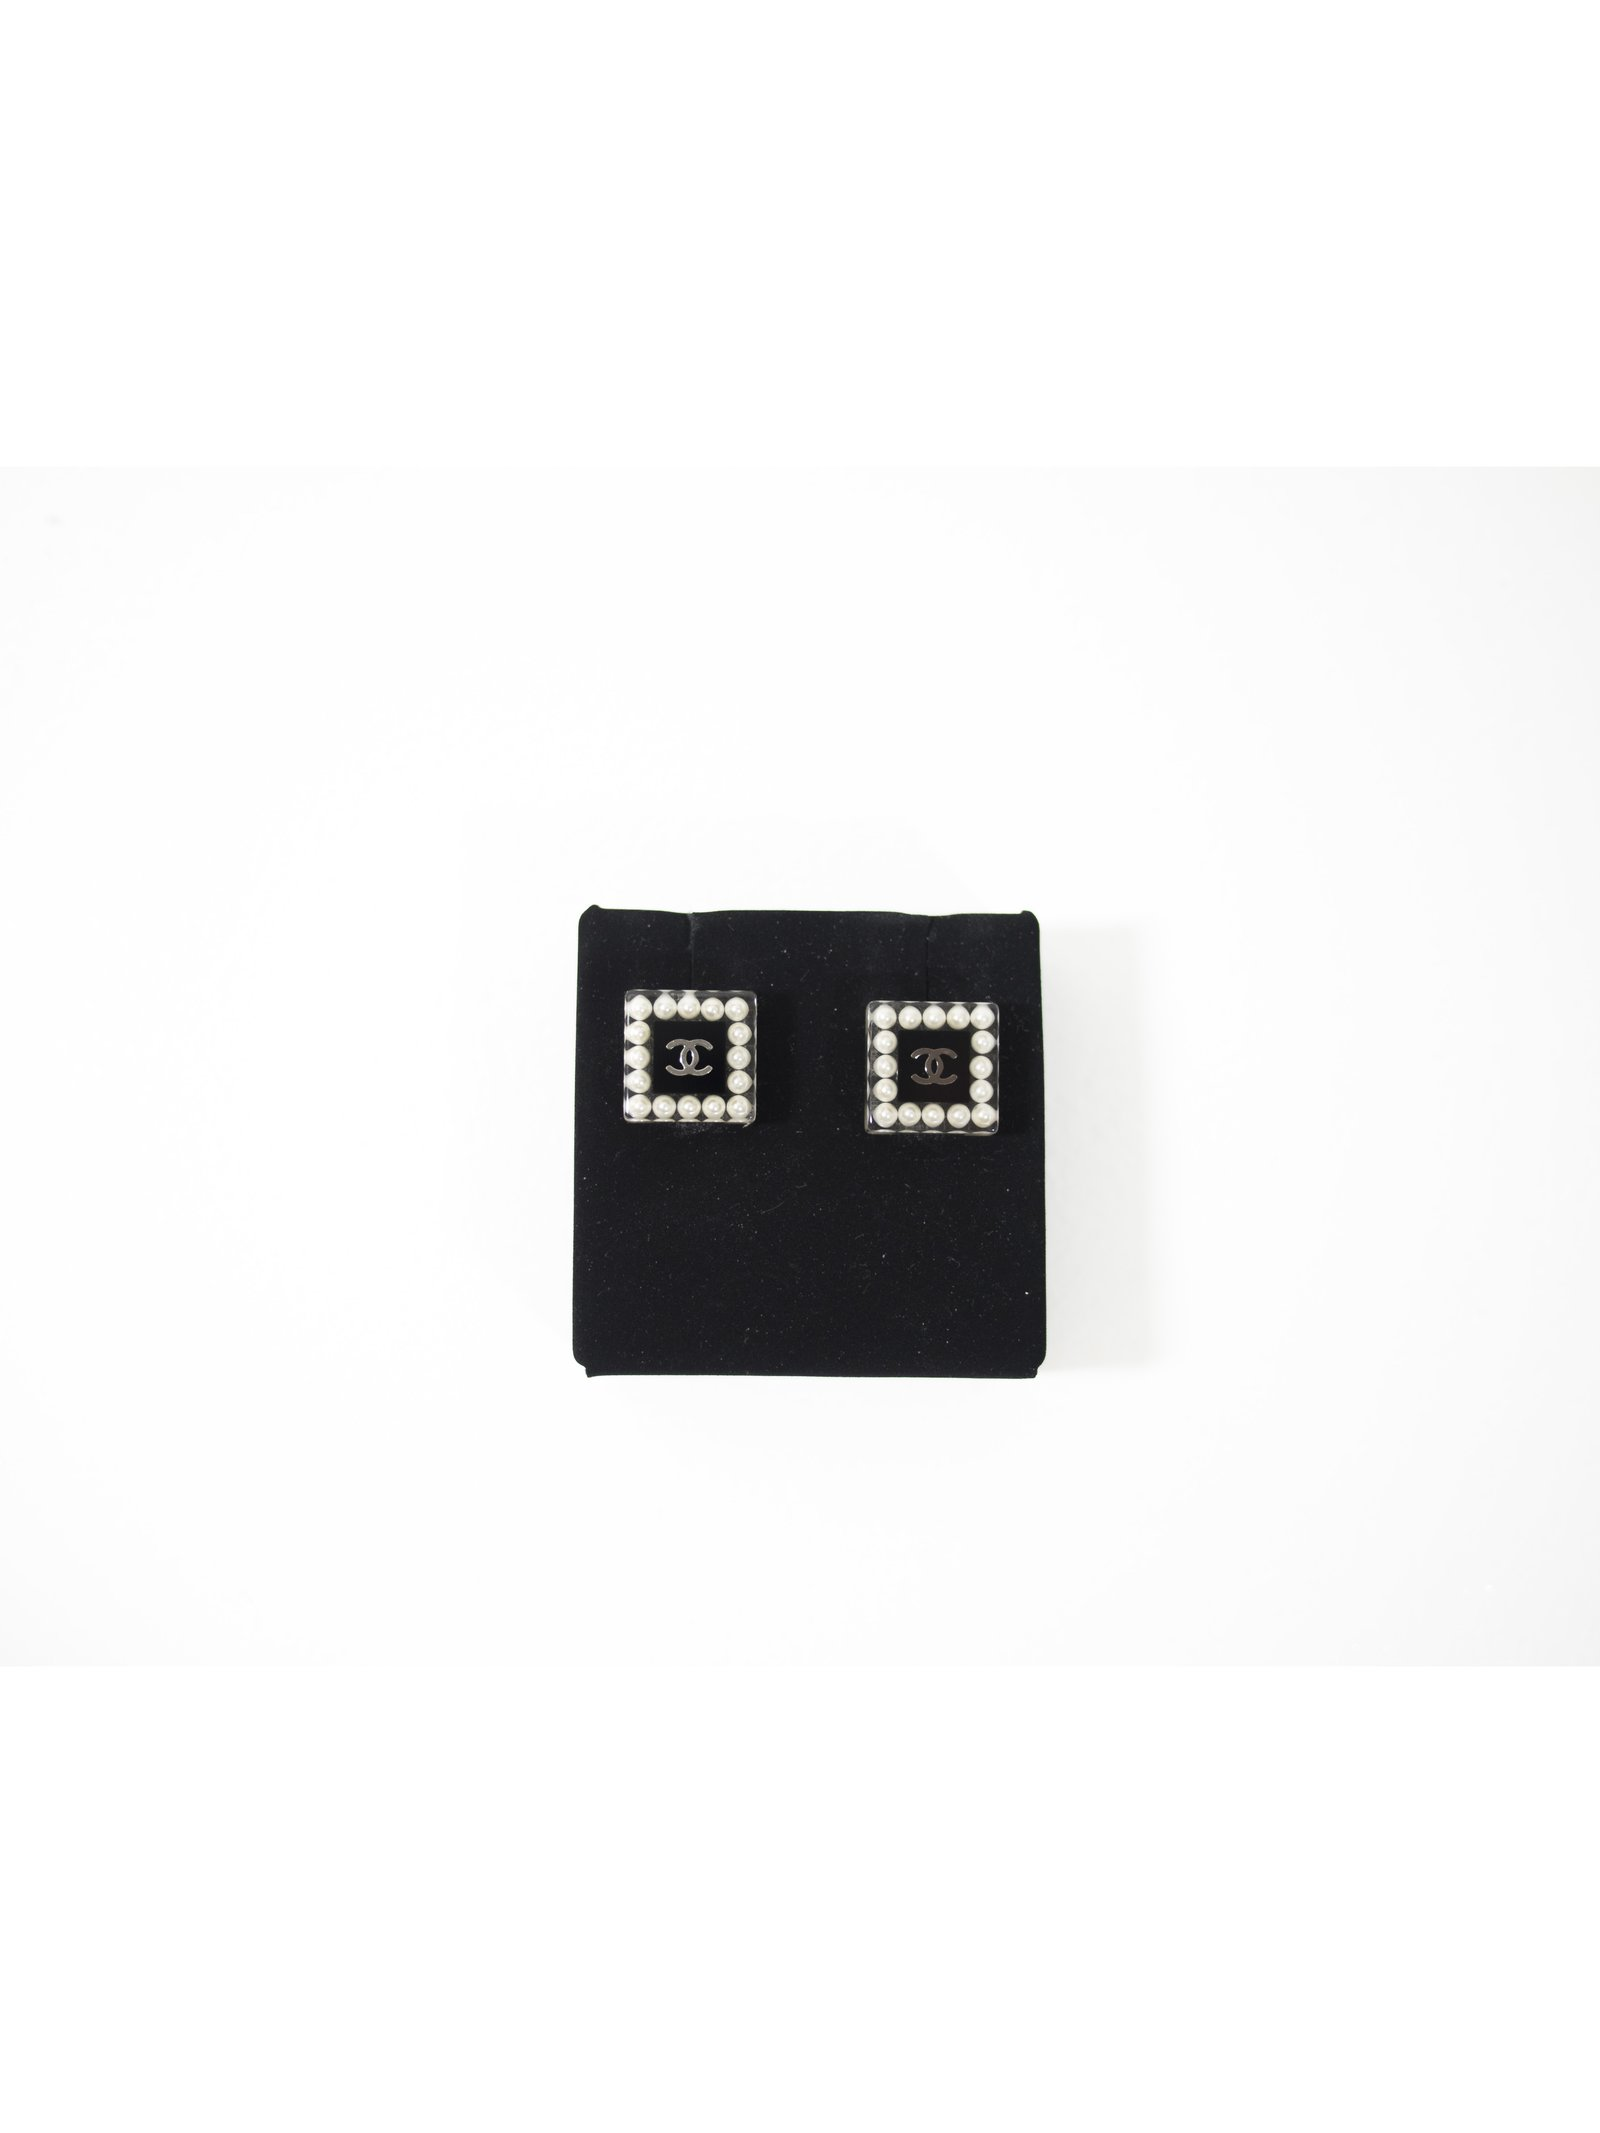 Chanel Chanel Pearl CC Square Stud Earrings